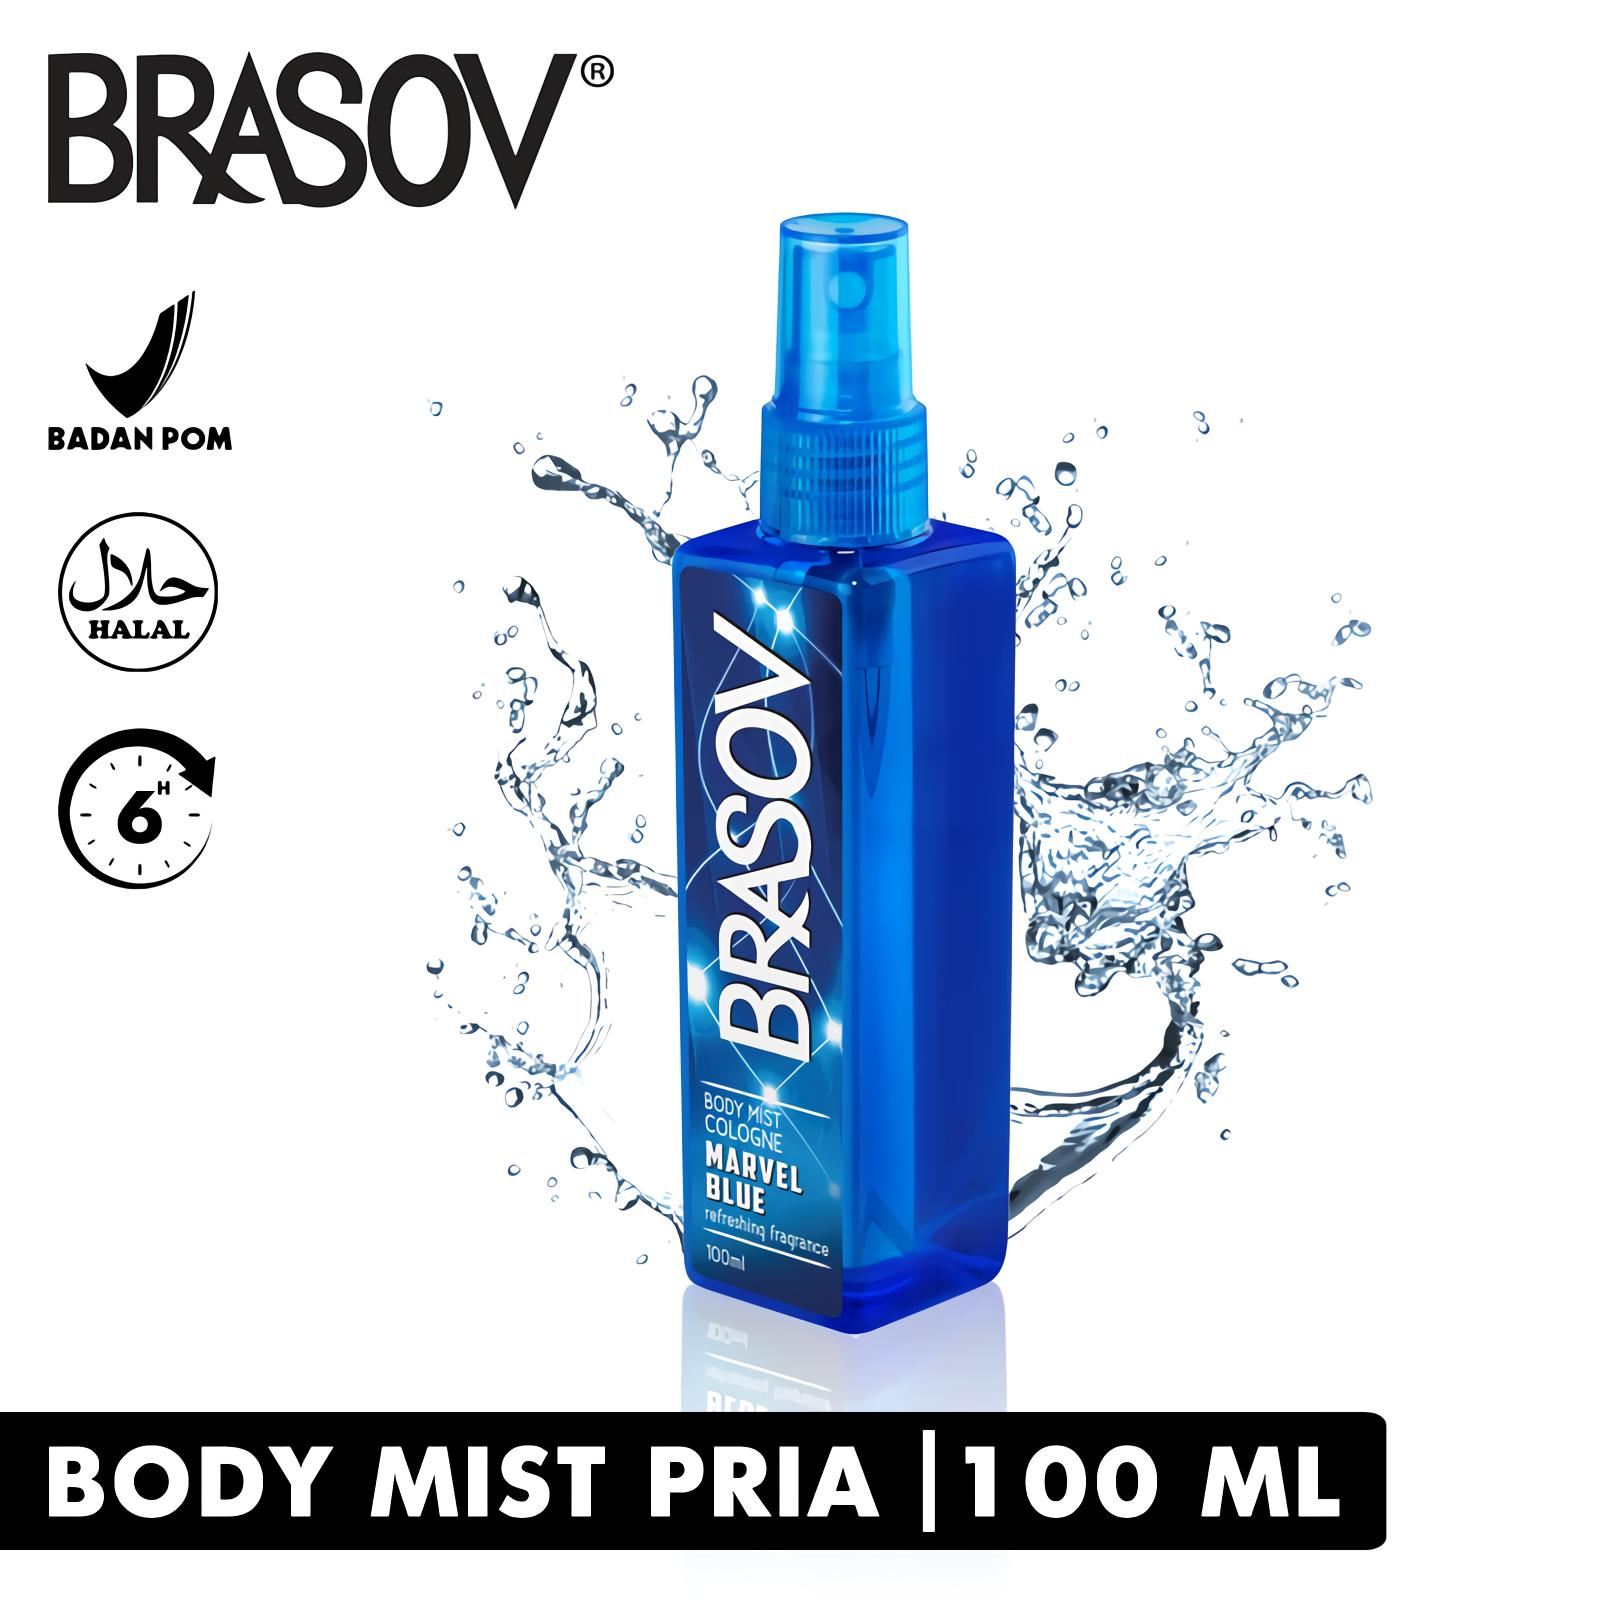 Brasov Original Body Mist Halal Xx Ct 671412 Wonder Violet Parfum Spray Netto 100 Ml Ungu Lazada Indonesia